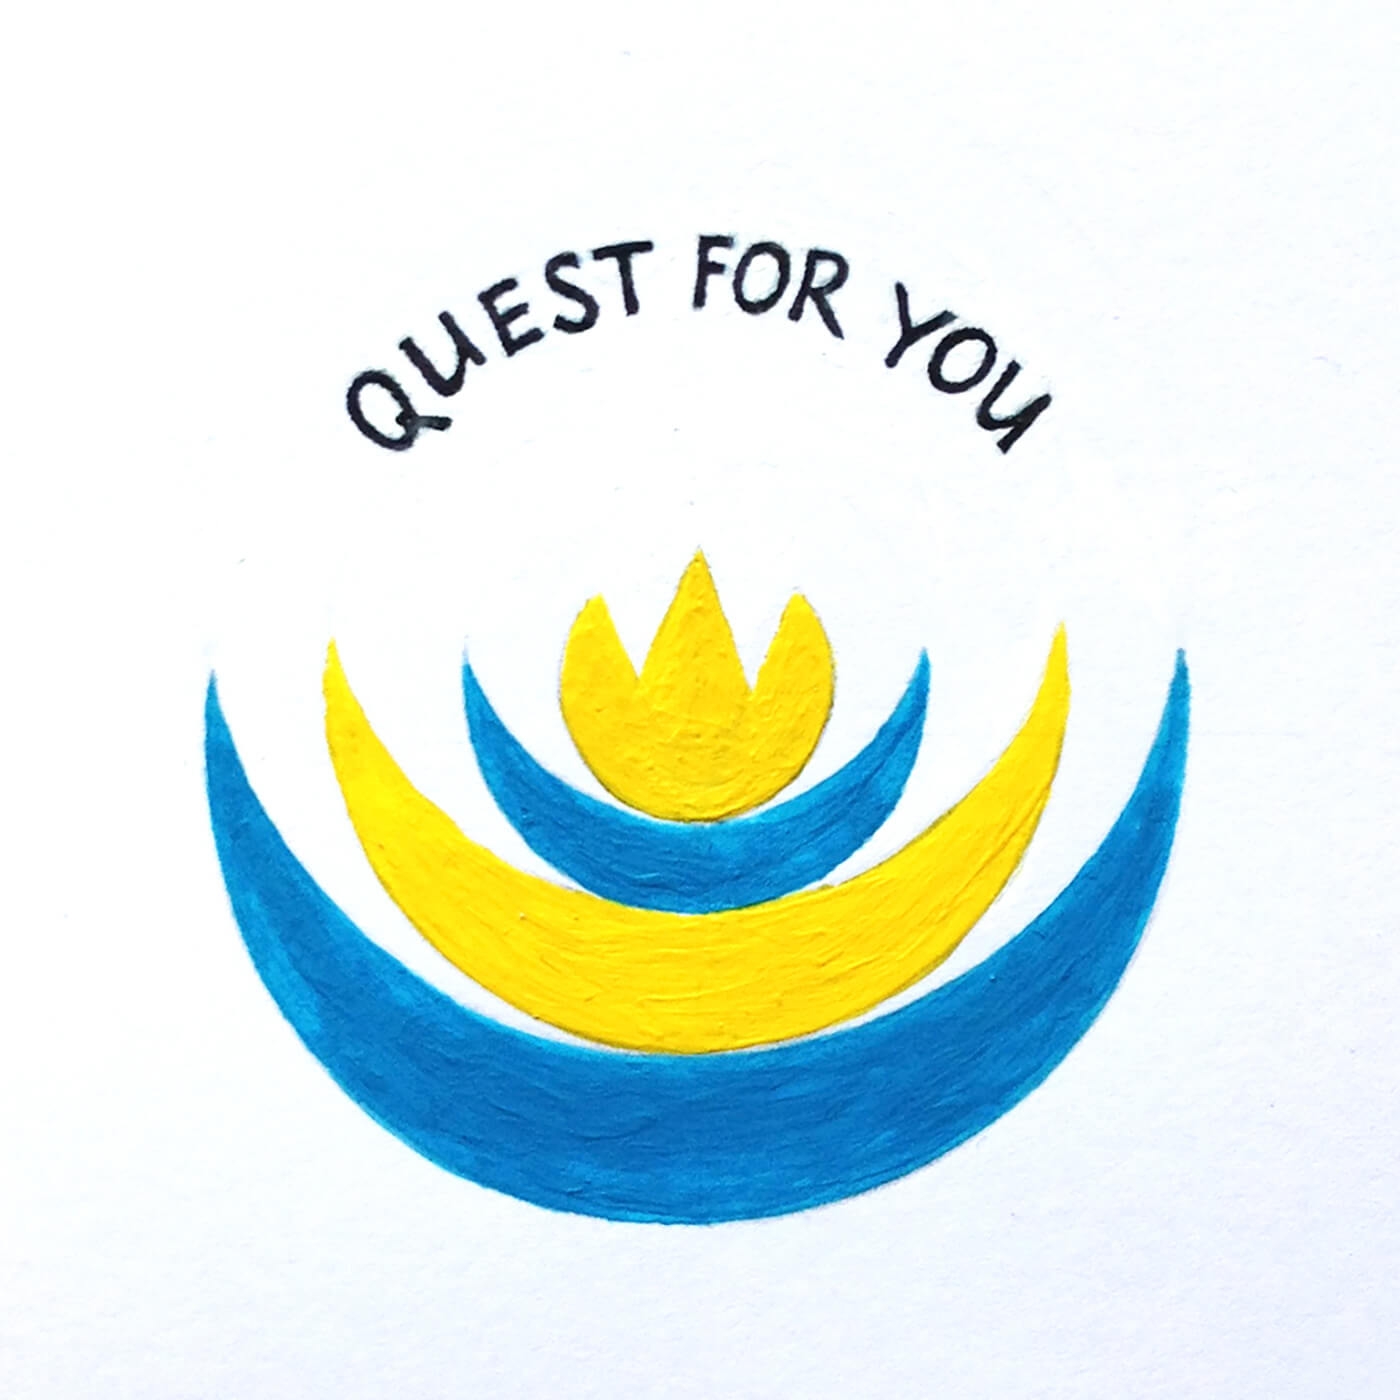 Quest For You